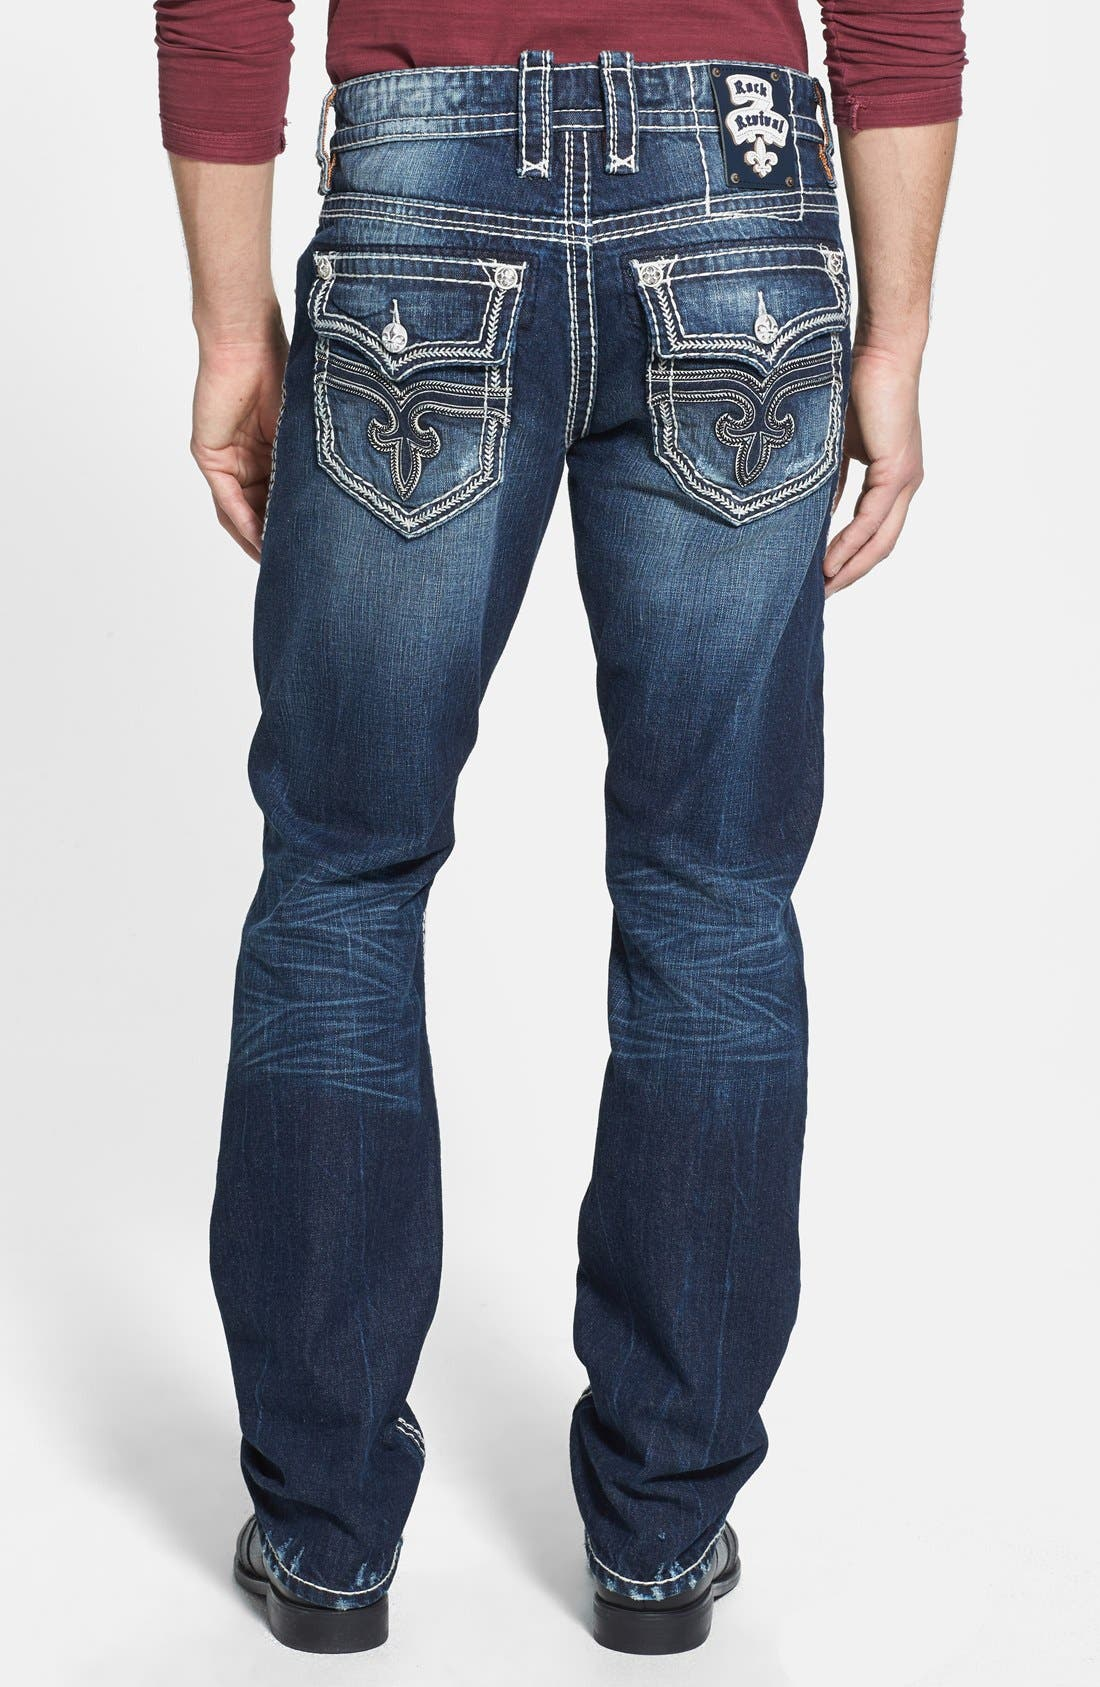 Alternate Image 1 Selected - Rock Revival 'Saul' Straight Leg Jeans (Dark Blue)